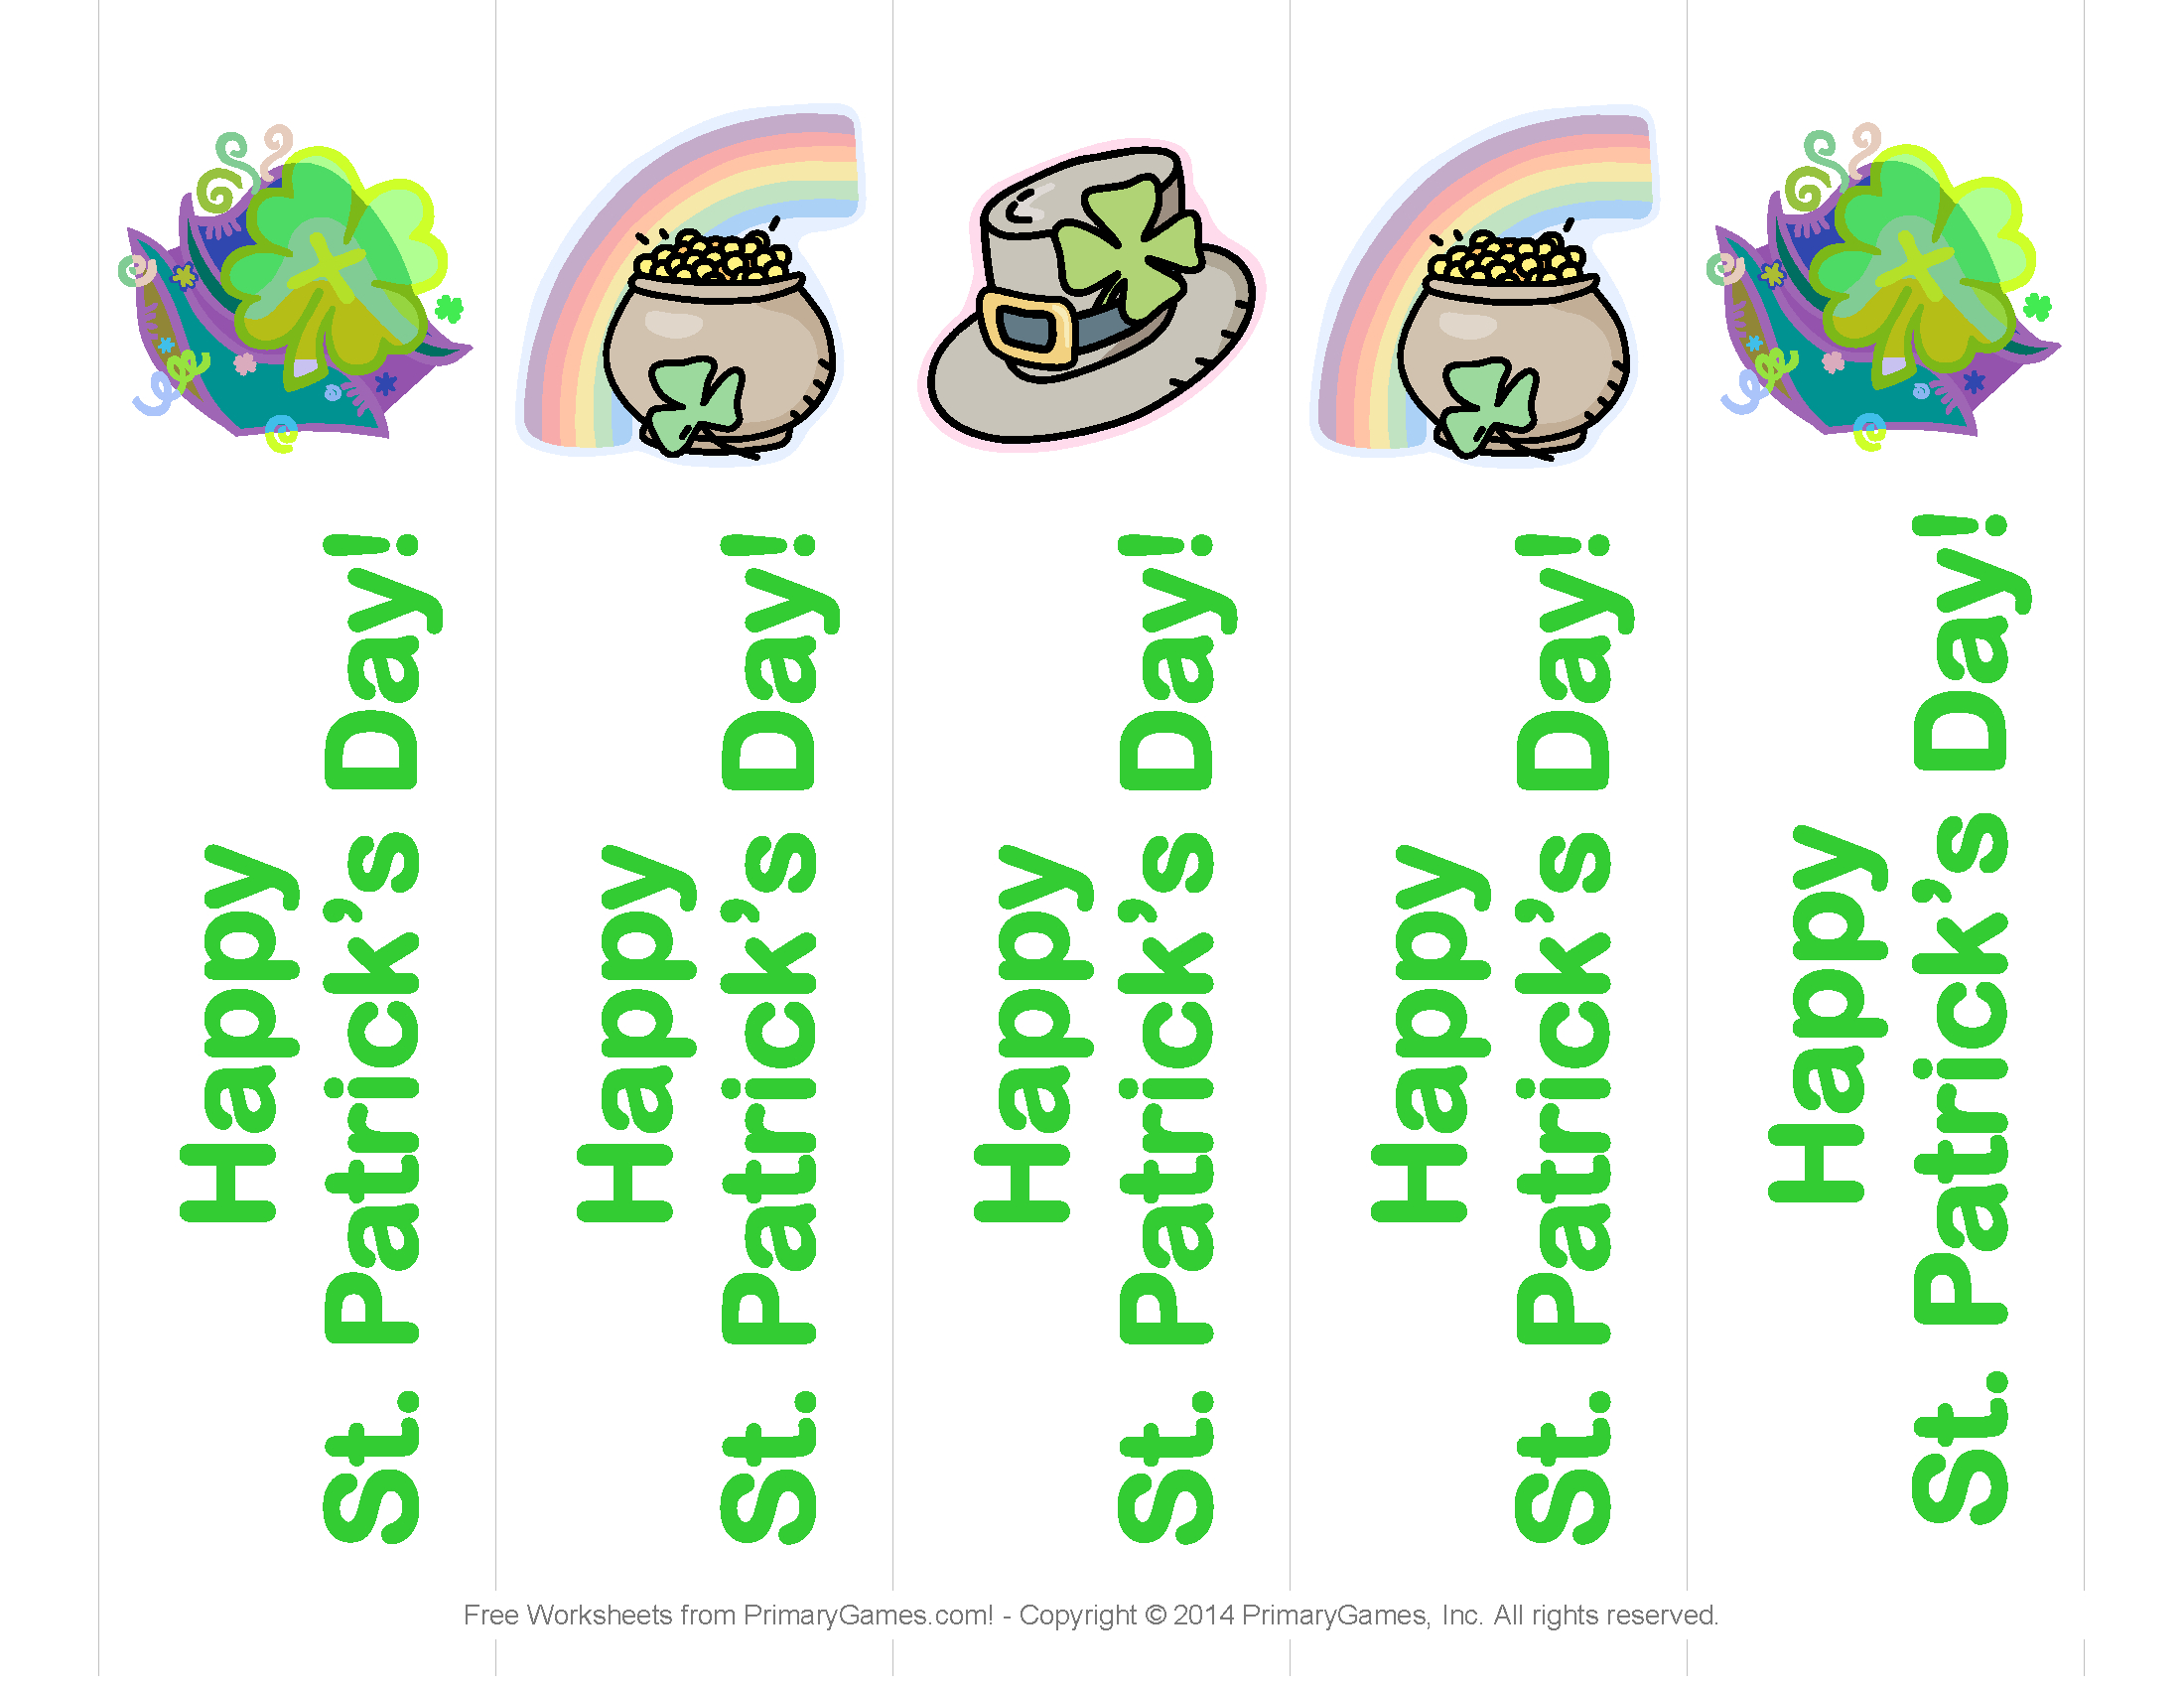 St. Patrick's Day Worksheets: St. Patrick's Day Bookmarks - Free Printable St Patrick's Day Card